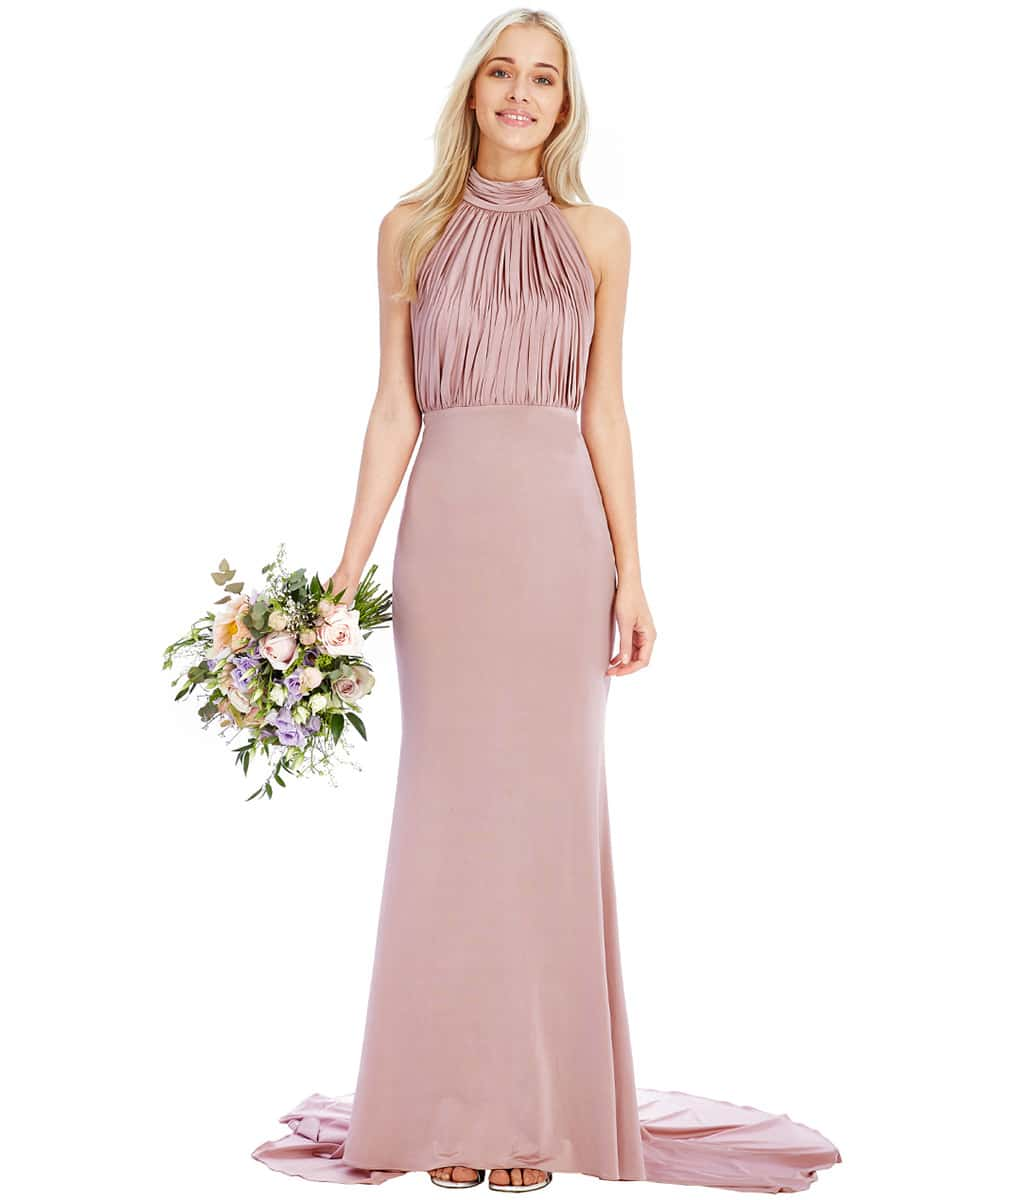 Alila-Blush-Backless-Debs-Dress-City-Goddess-front